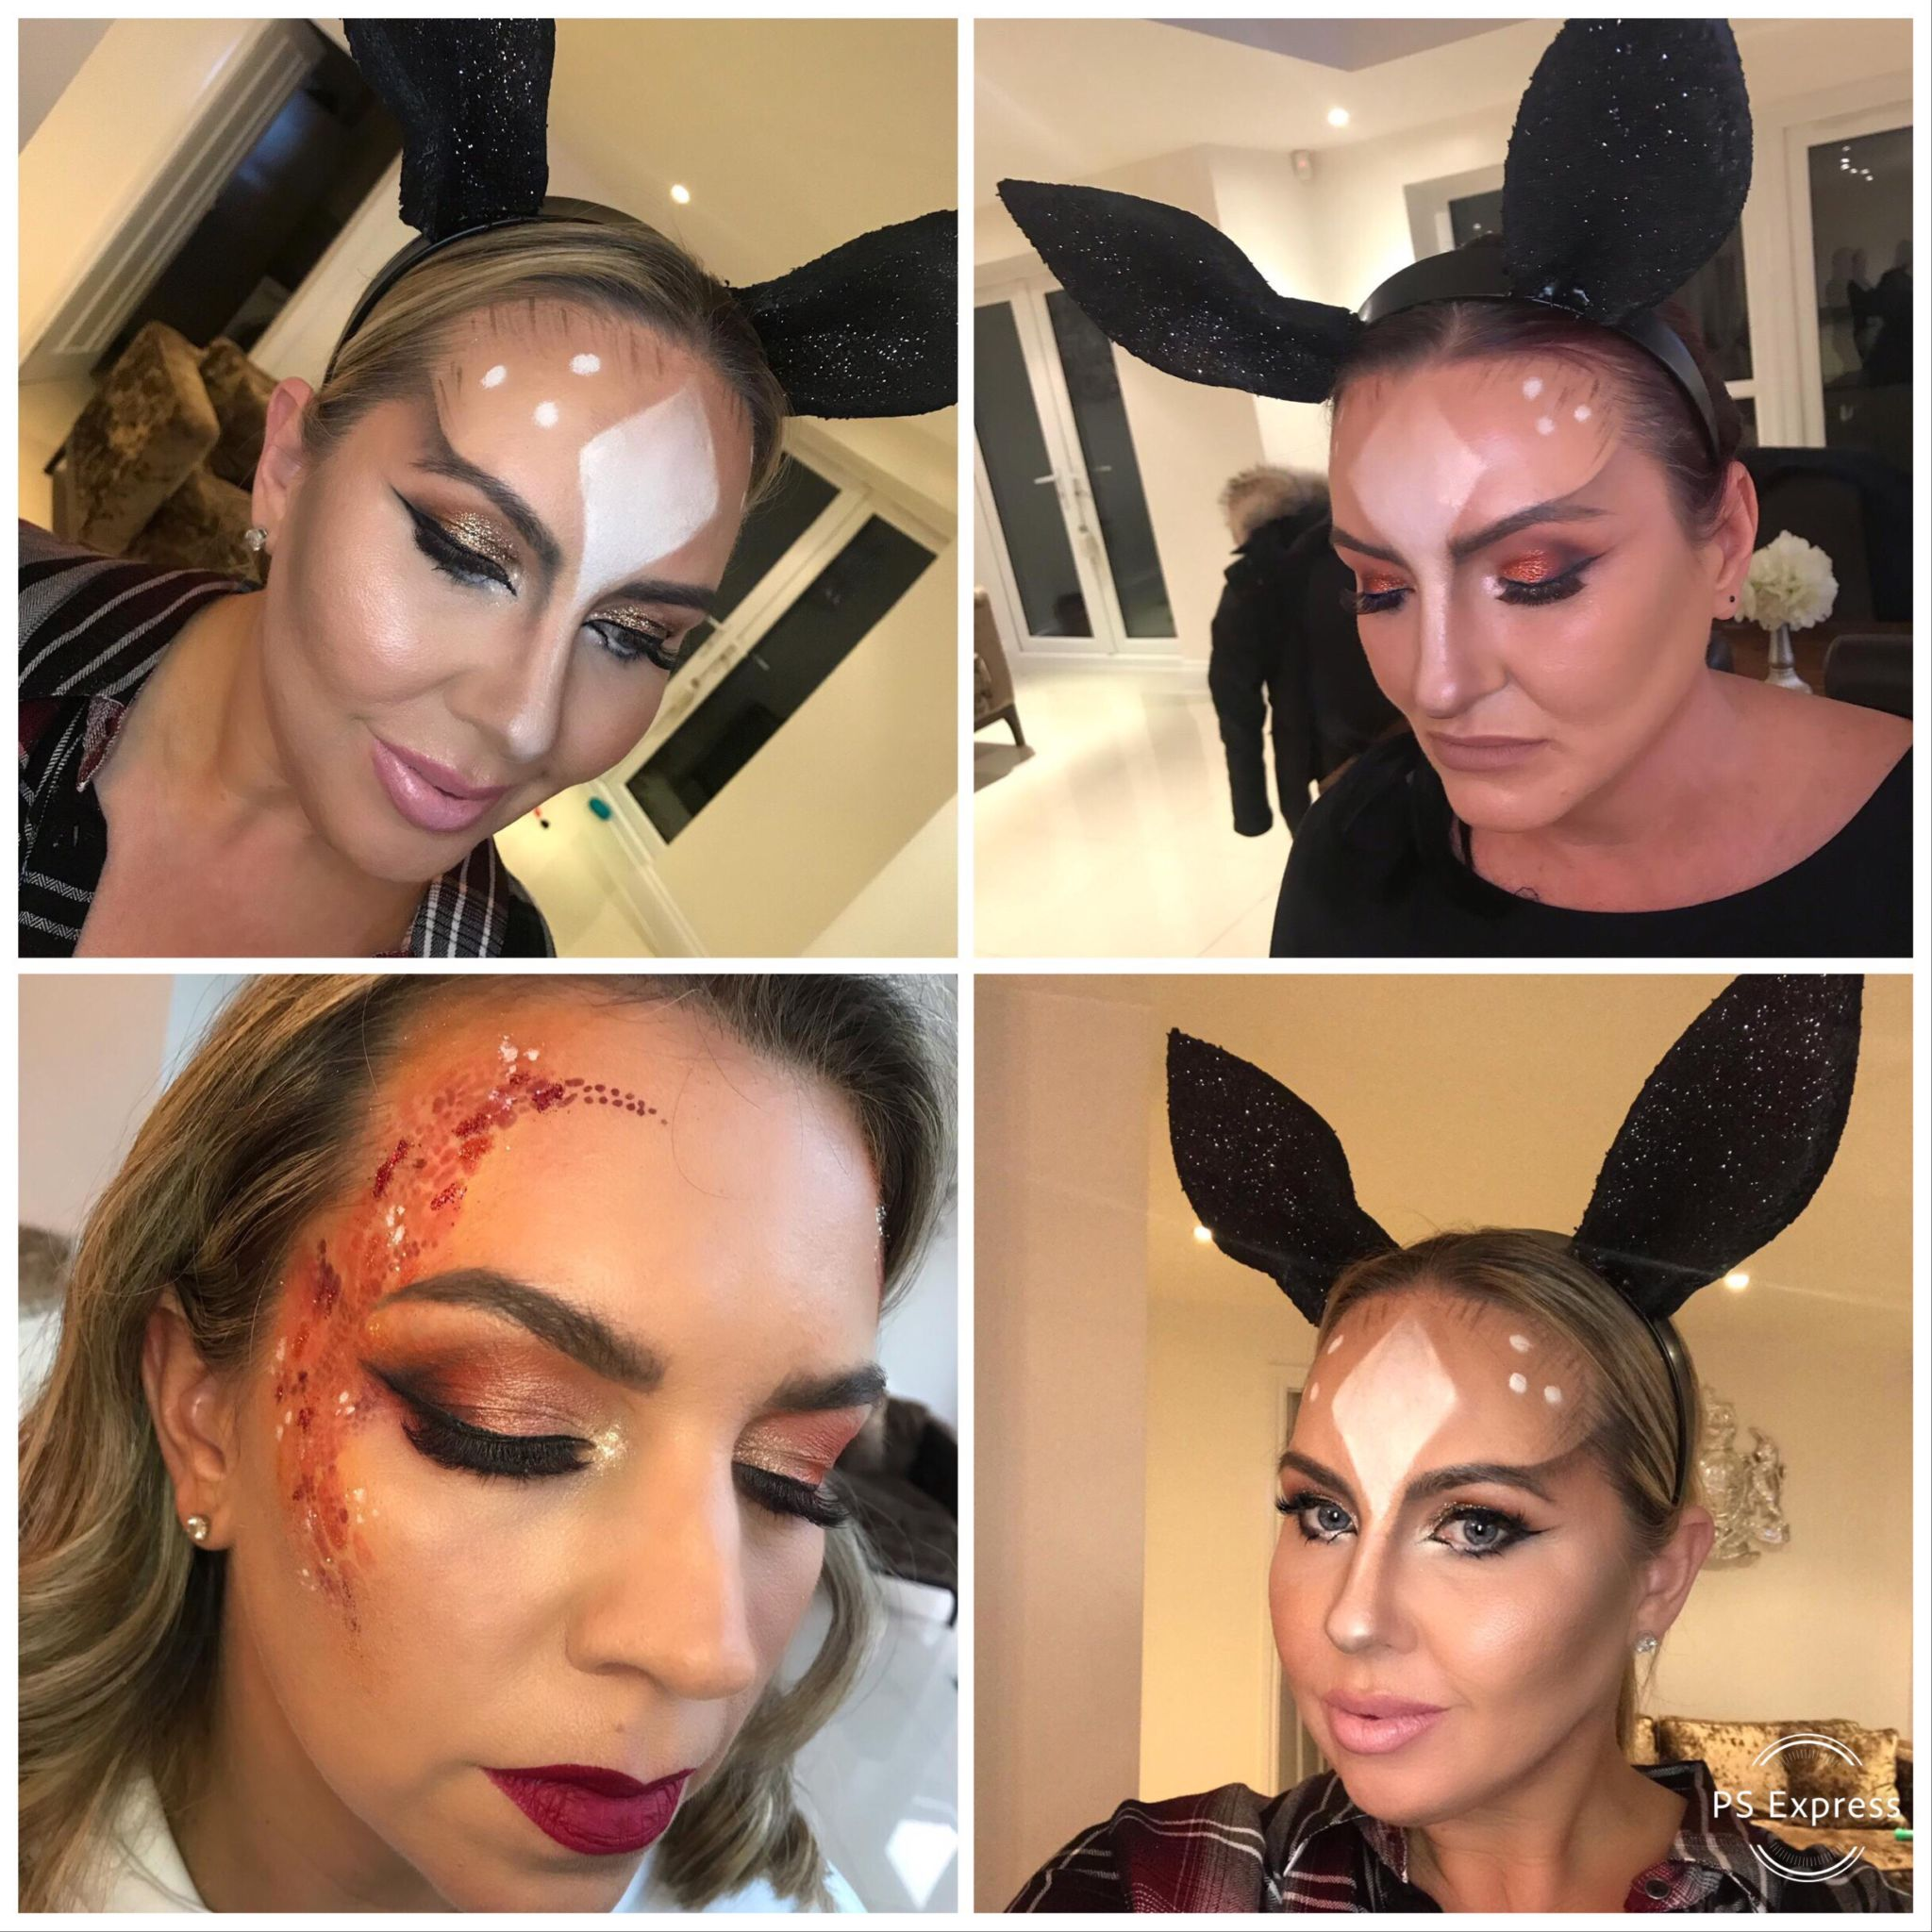 Ashleigh Brunce MUA created our makeup looks for Leah Wrights 40th Birthday Party